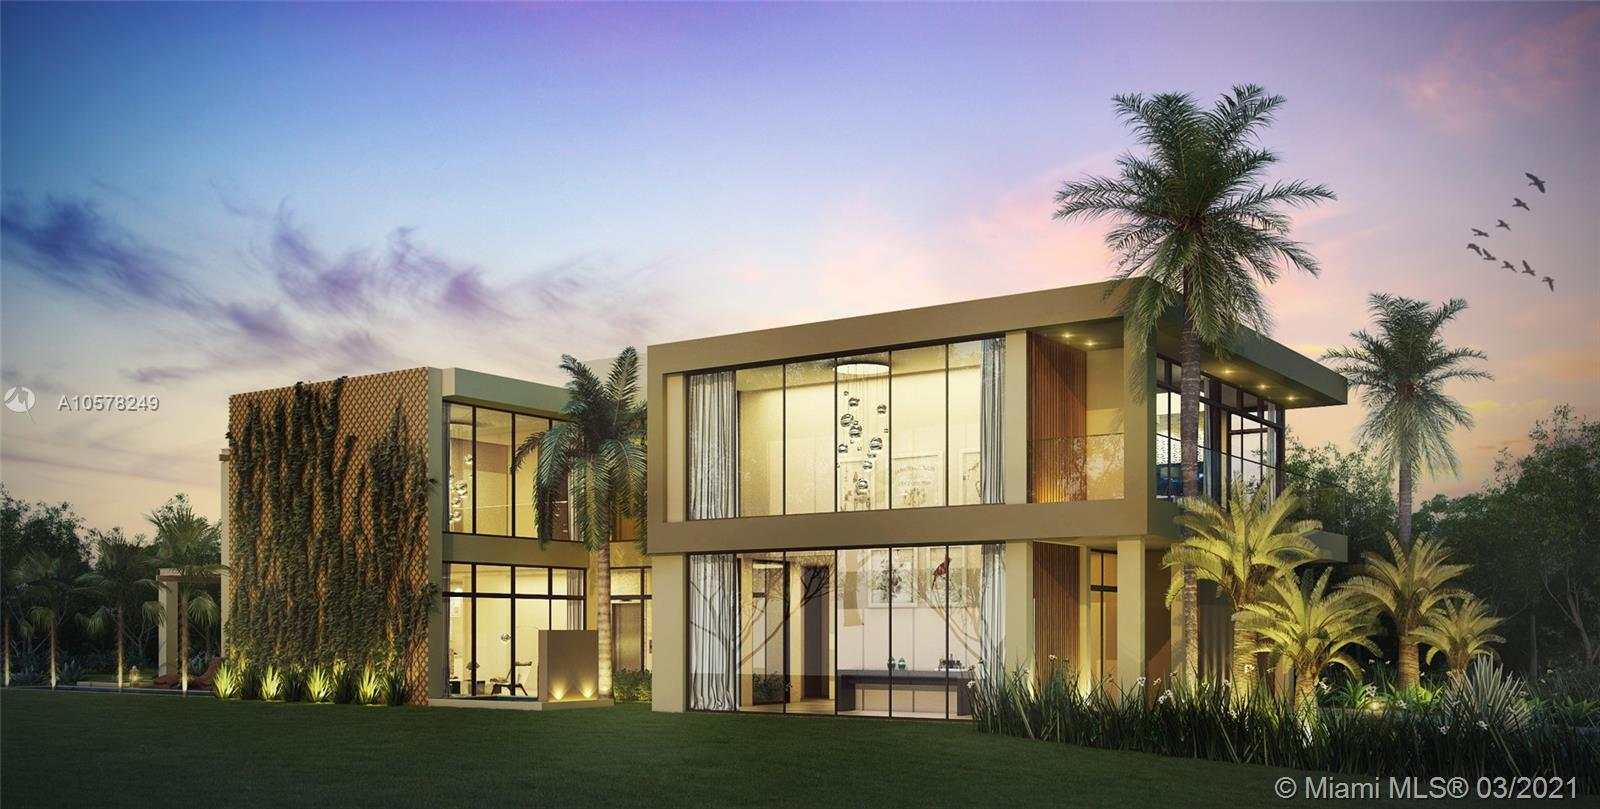 "BRAND NEW CONSTRUCTION Built to Suit *BRING ALL OFFERS, ""BEST HOUSE AVAILABLE in front of Simpson Park"" Great opportunity for an End-user/Owner occupant looking to Customize their own Castle/Home. Ultra-chic, hottest & most desirable place in Miami's financial district… walking distance to BRICKELL CITY CENTRE, HIGH-END LUXURY brands & shopping, amazing restaurants, Movie Theater, Bistros, preservation-parks,  supermarkets, only 2 blocks from the Bay, w/ easy access to highways & main roads. 